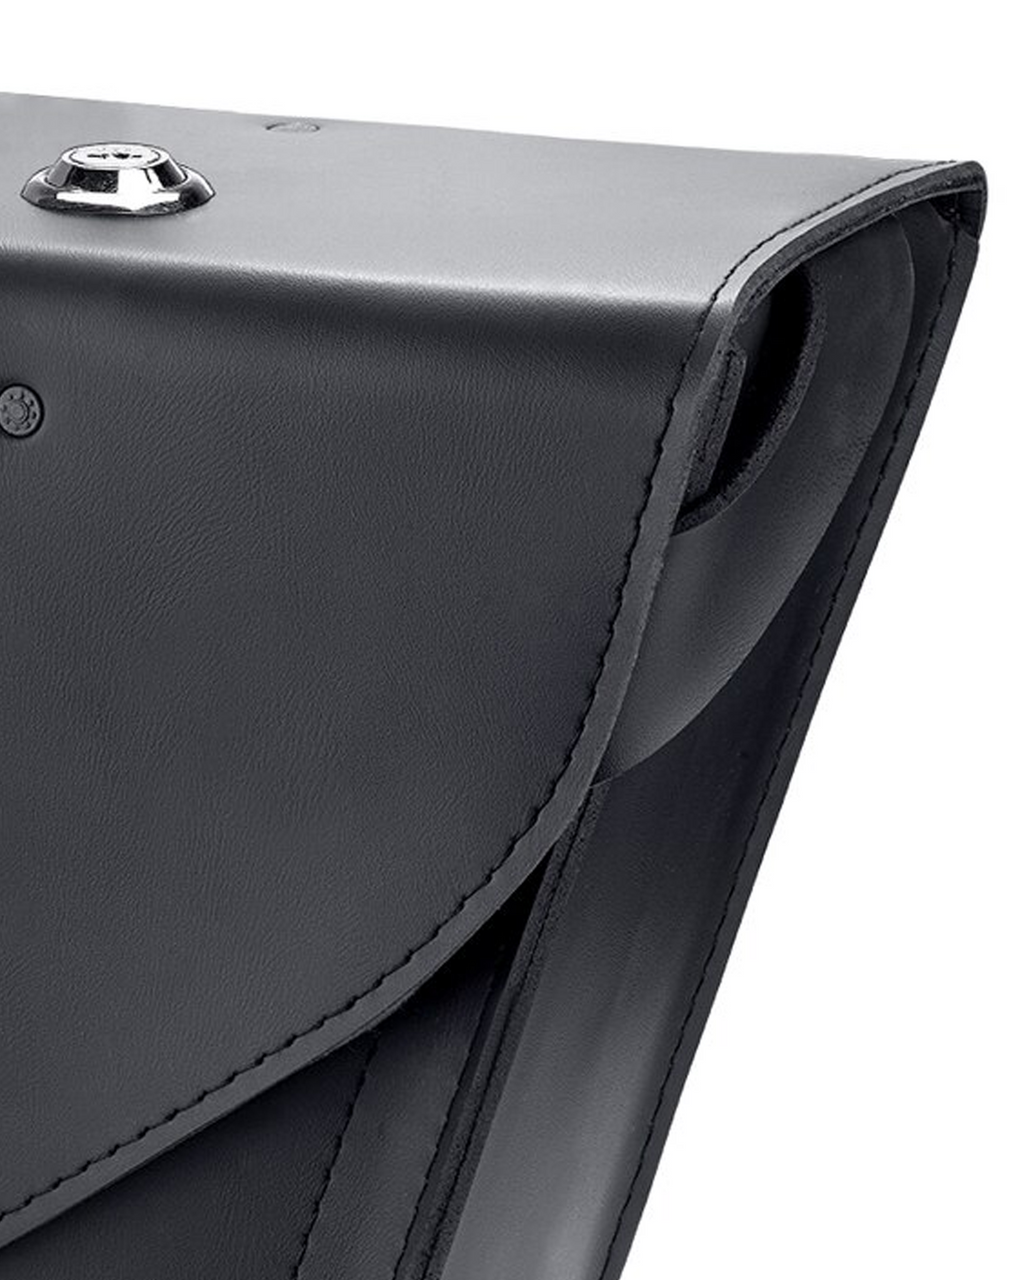 Viking Dark Age Compact Plain Leather Motorcycle Saddlebags For Sportster 1200 Nightster XL1200N Side view